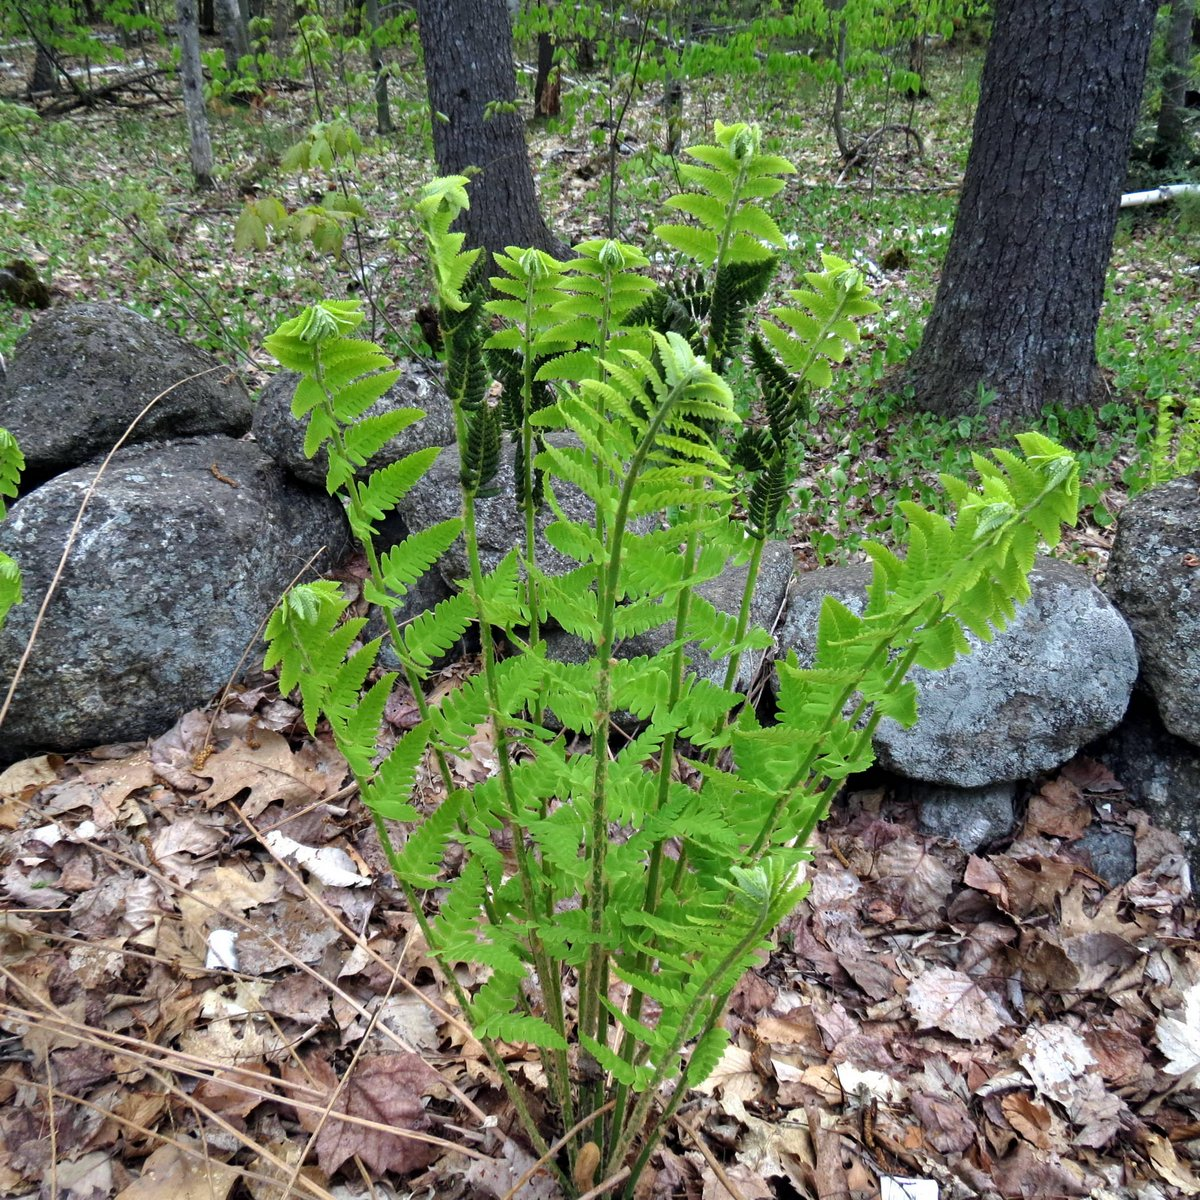 3. Interrupted Fern